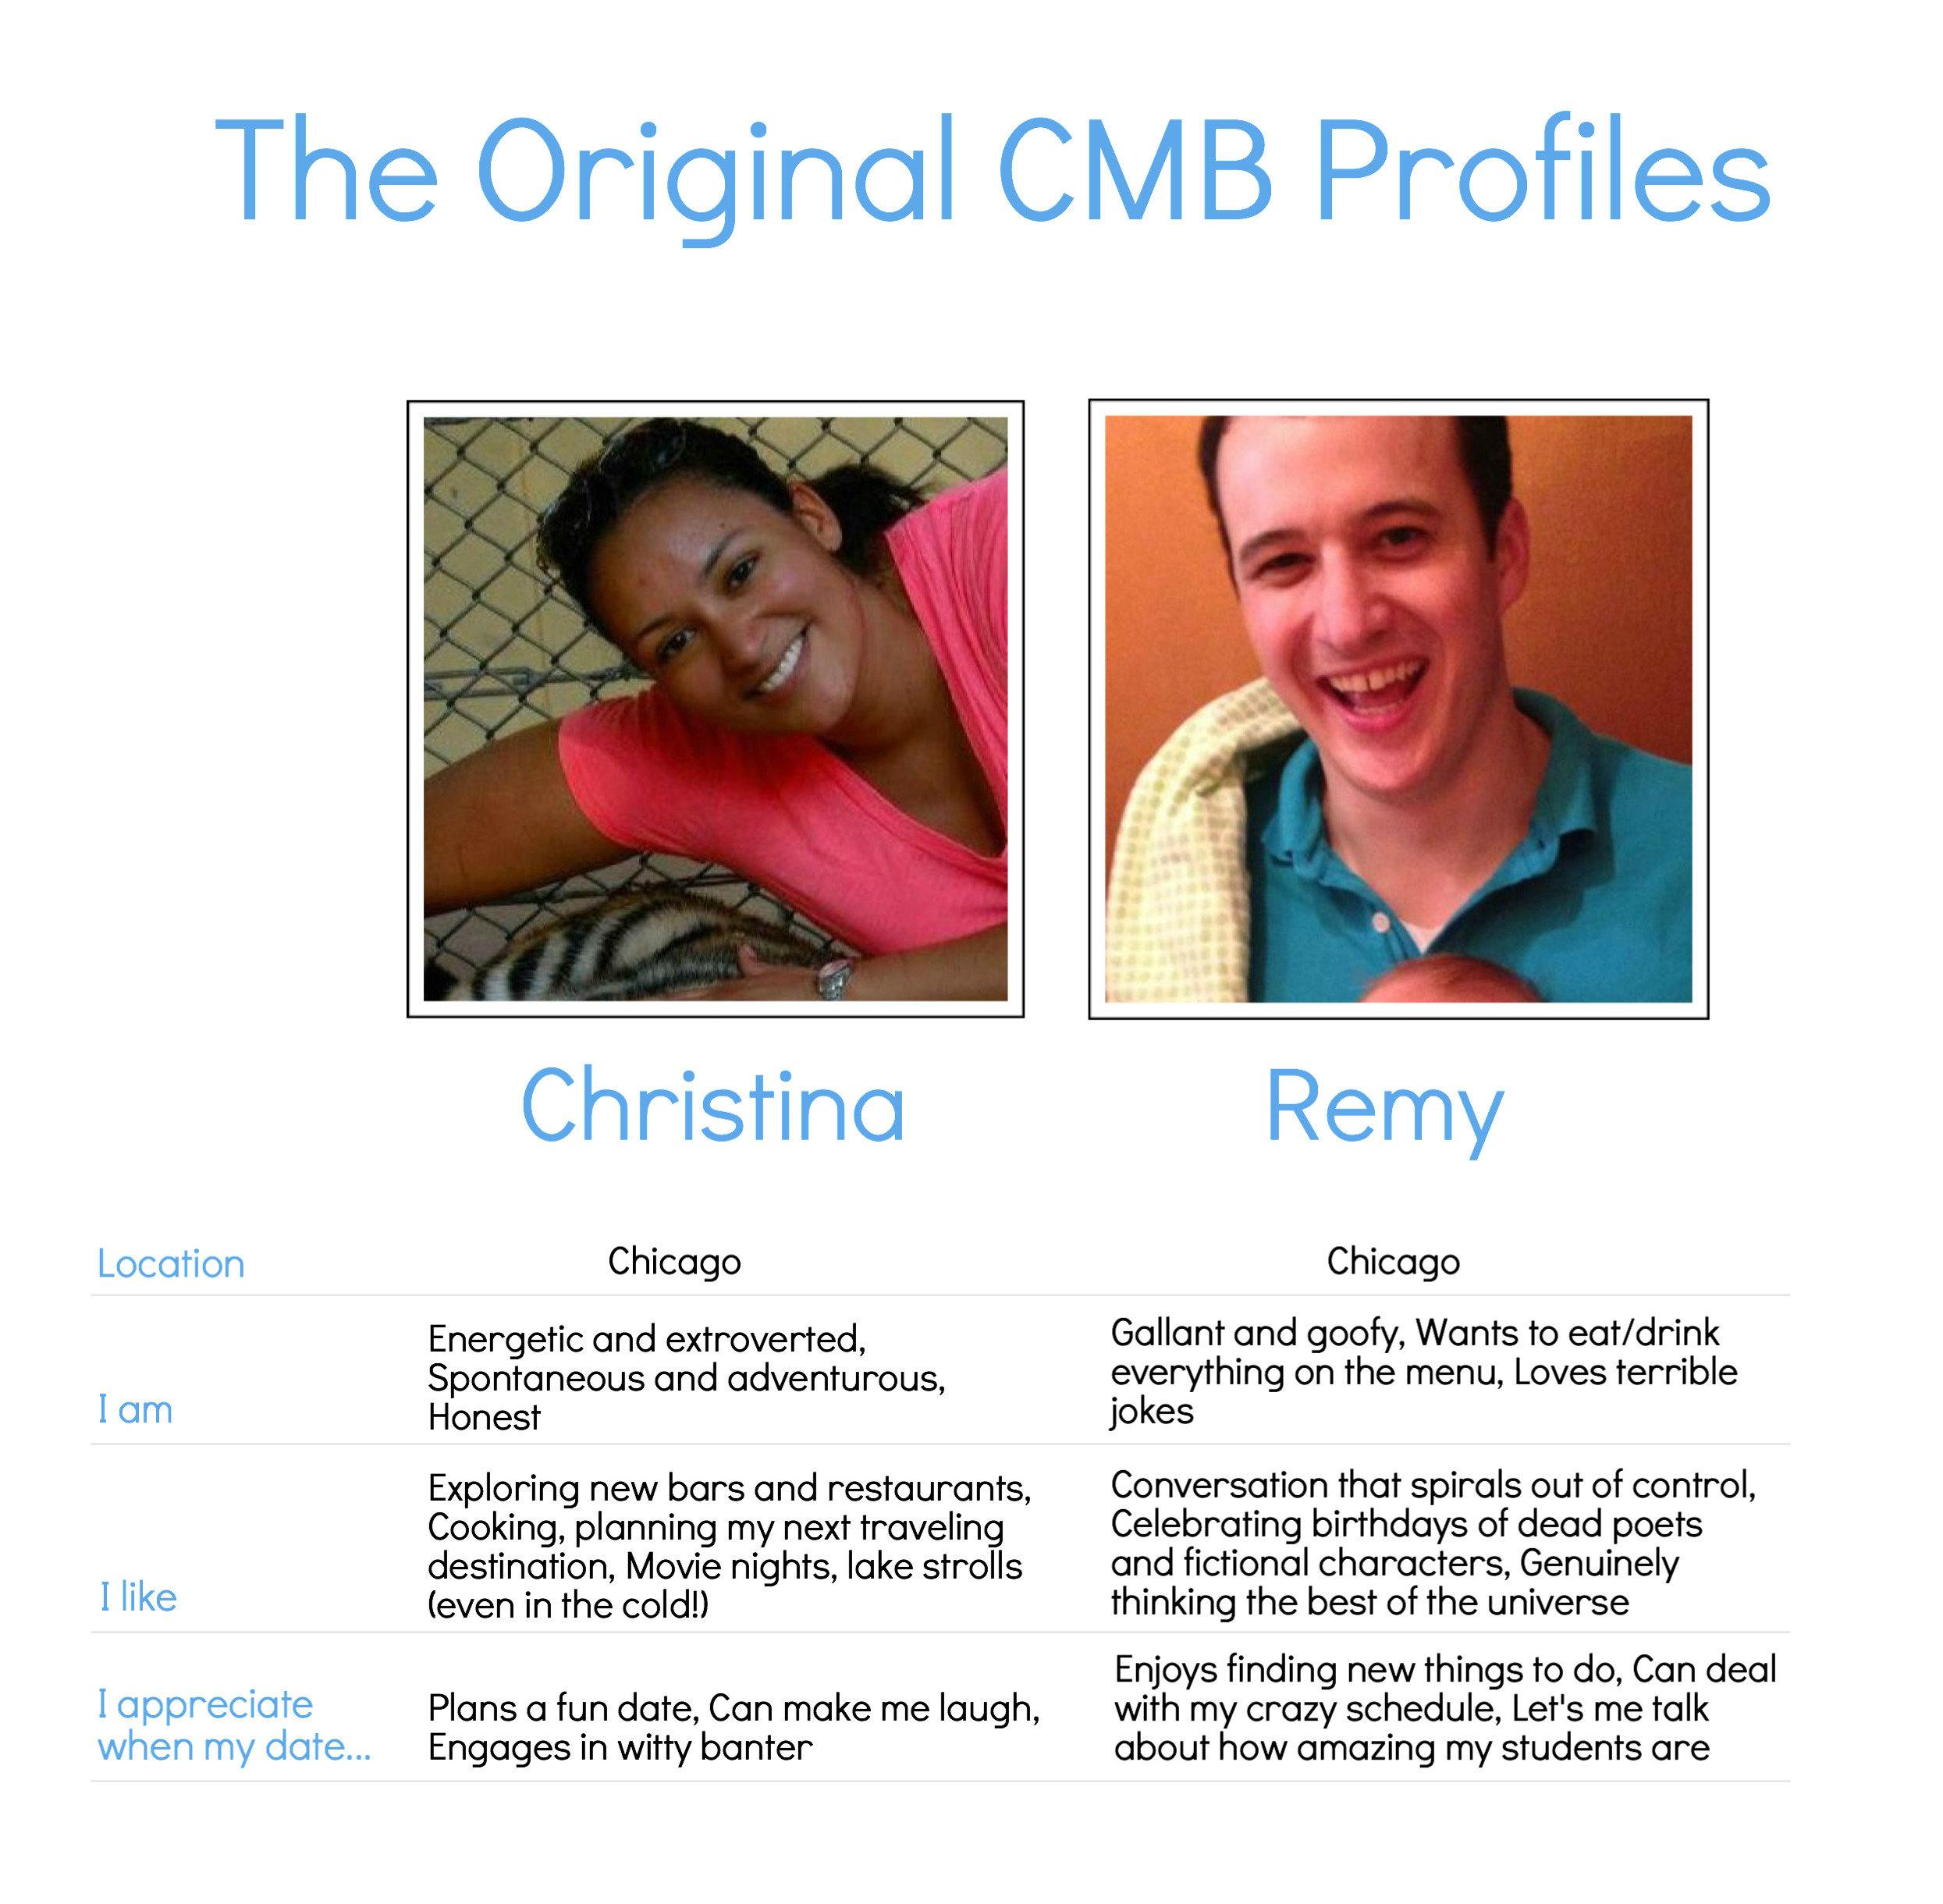 Profiles of Christina and Remy